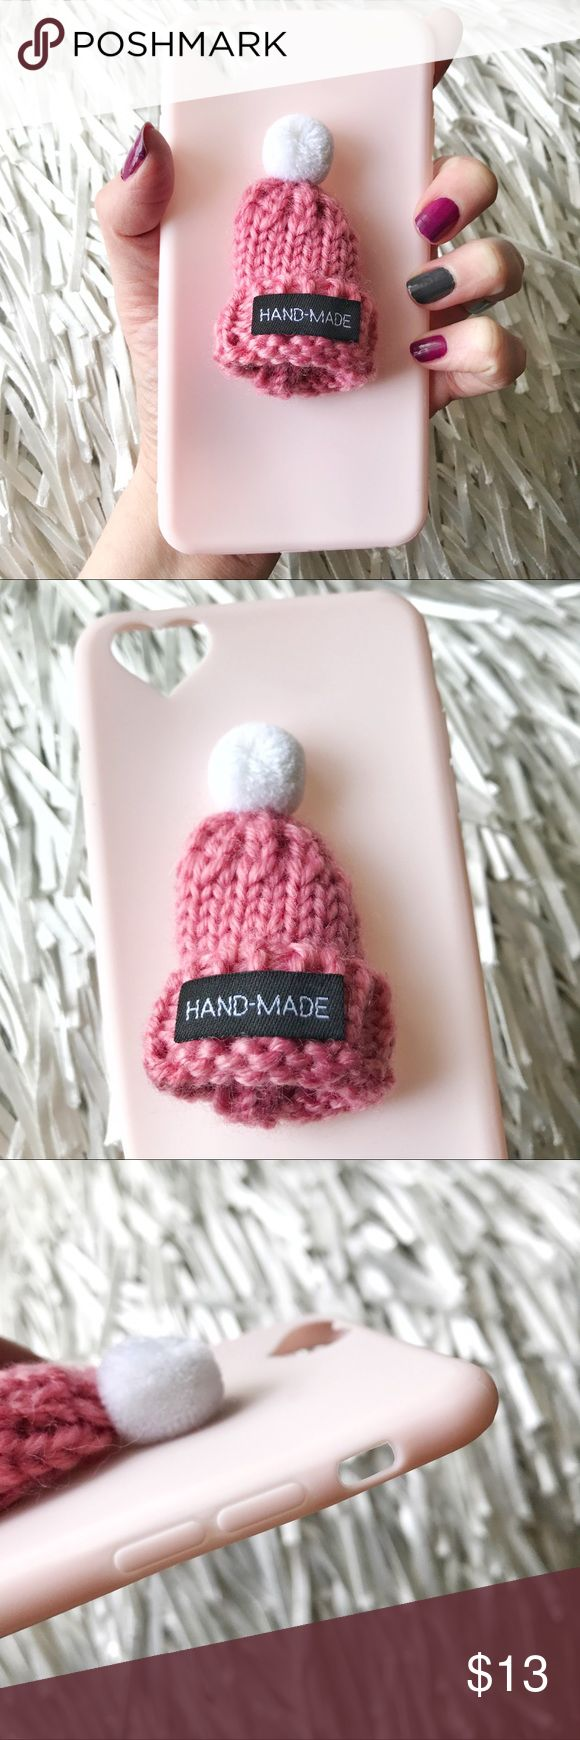 Host PickNEW iPhone 6/6s Plus Knit Hat Case ▪️Fits the iPhone 6 Plus or 6s Plus  models   ▪️High Quality Soft TPU - Thick & Shock-Resistant   ▪️Same or Next Business Day Shipping ! Accessories Phone Cases